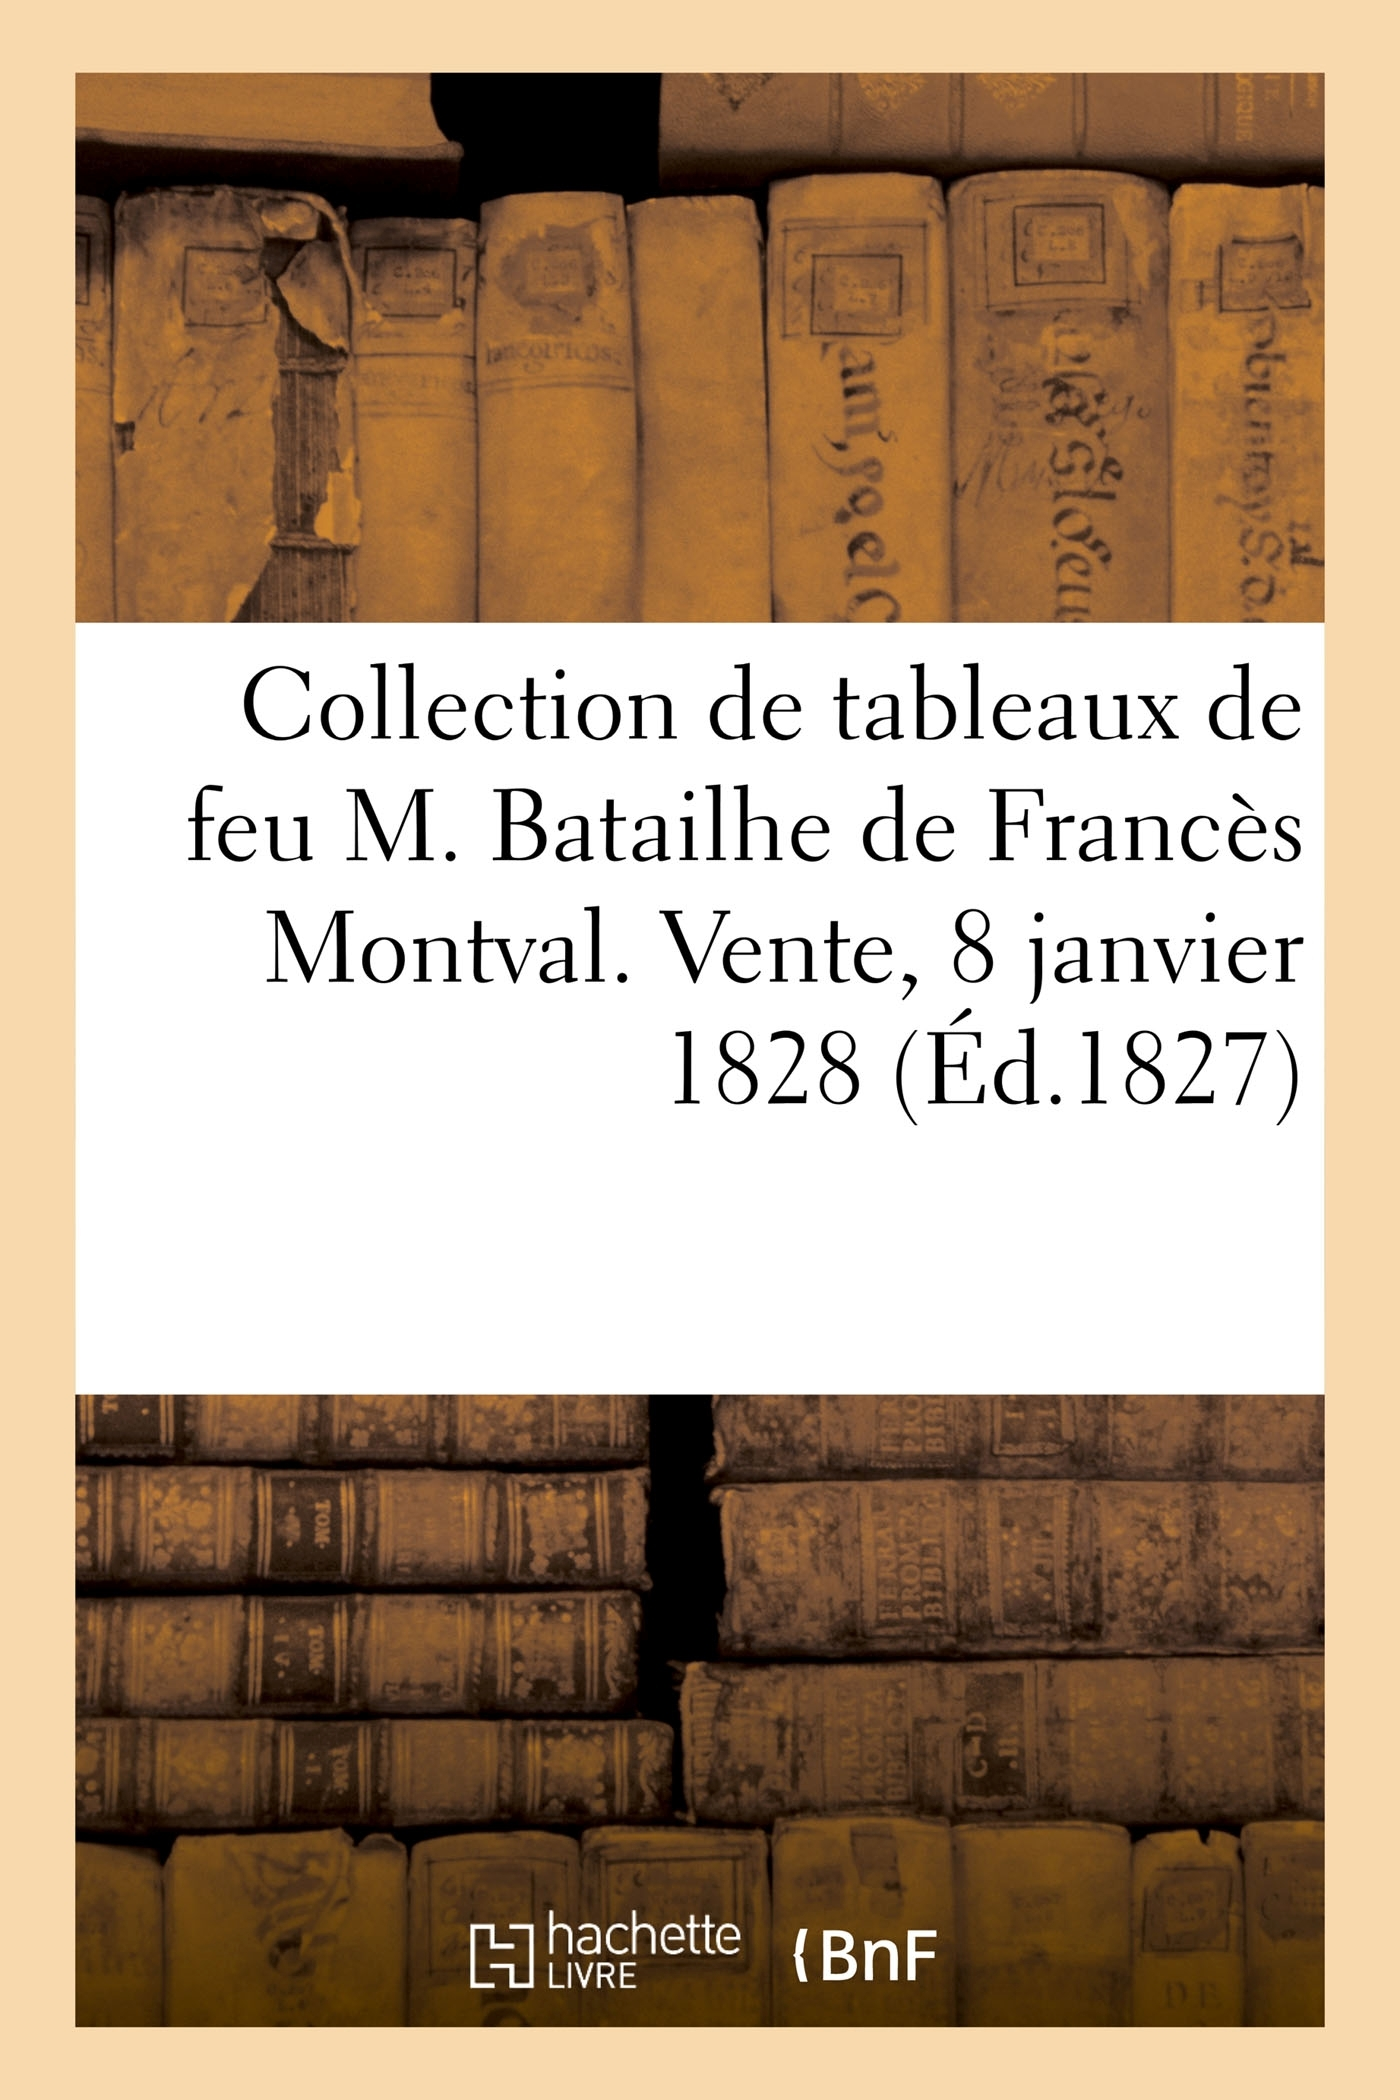 CATALOGUE D'UNE COLLECTION DE TABLEAUX, DESSINS, ESTAMPES - DE FEU M. BATAILHE DE FRANCES MONTVAL. V